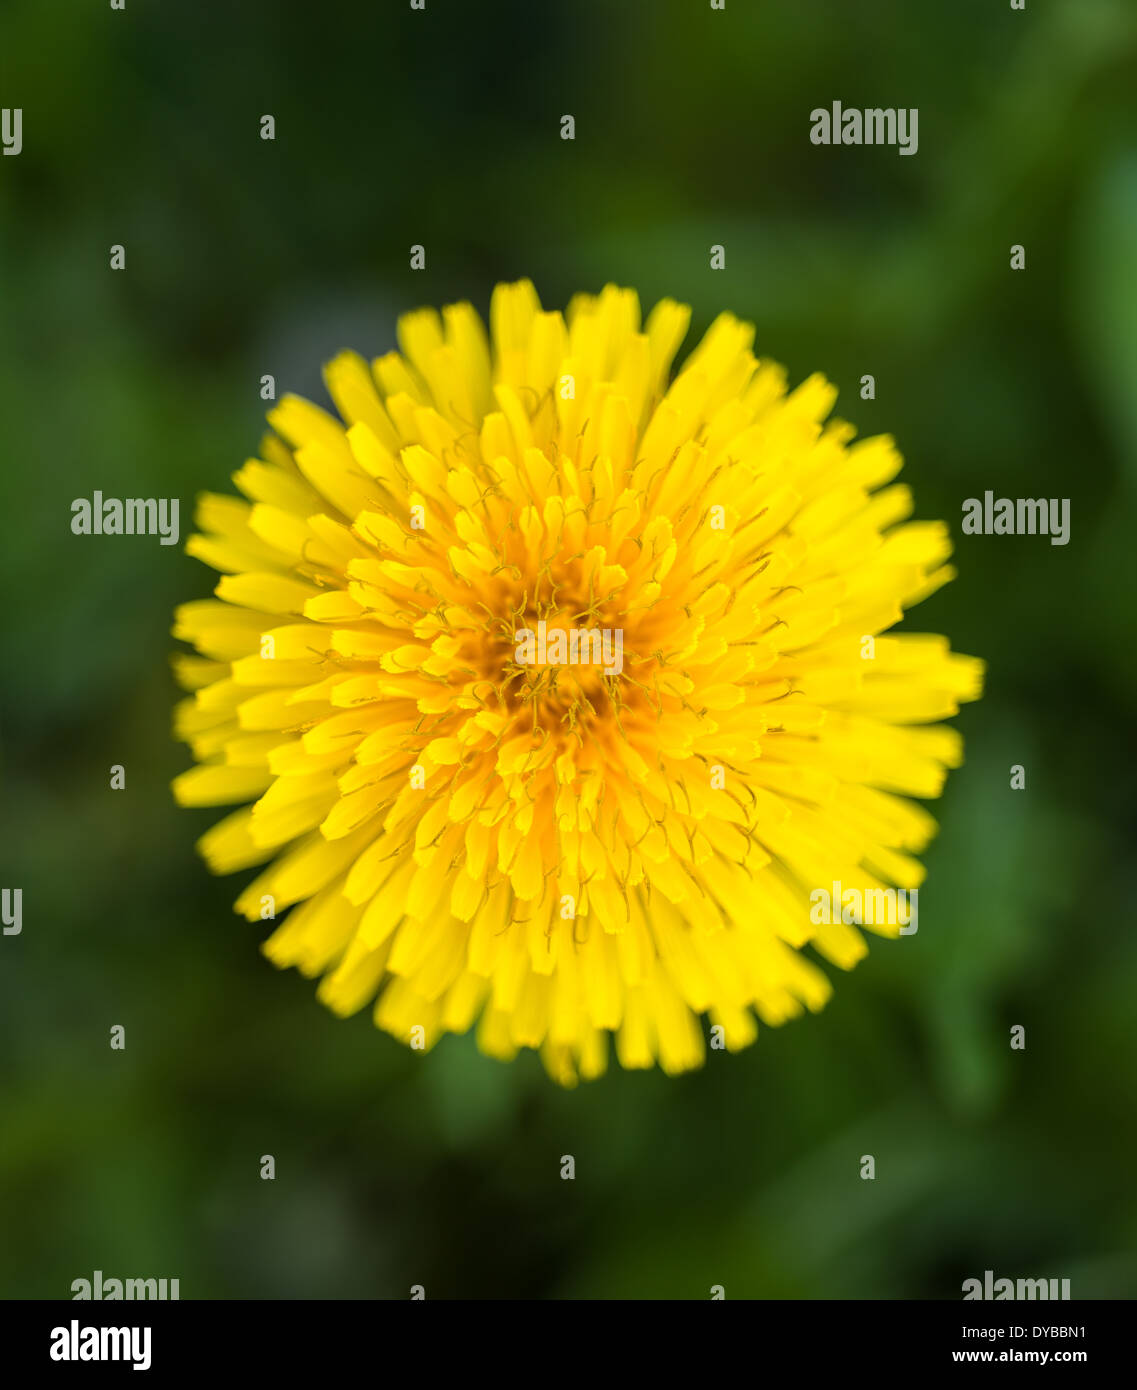 Dandelion flower on green blurred background - Stock Image